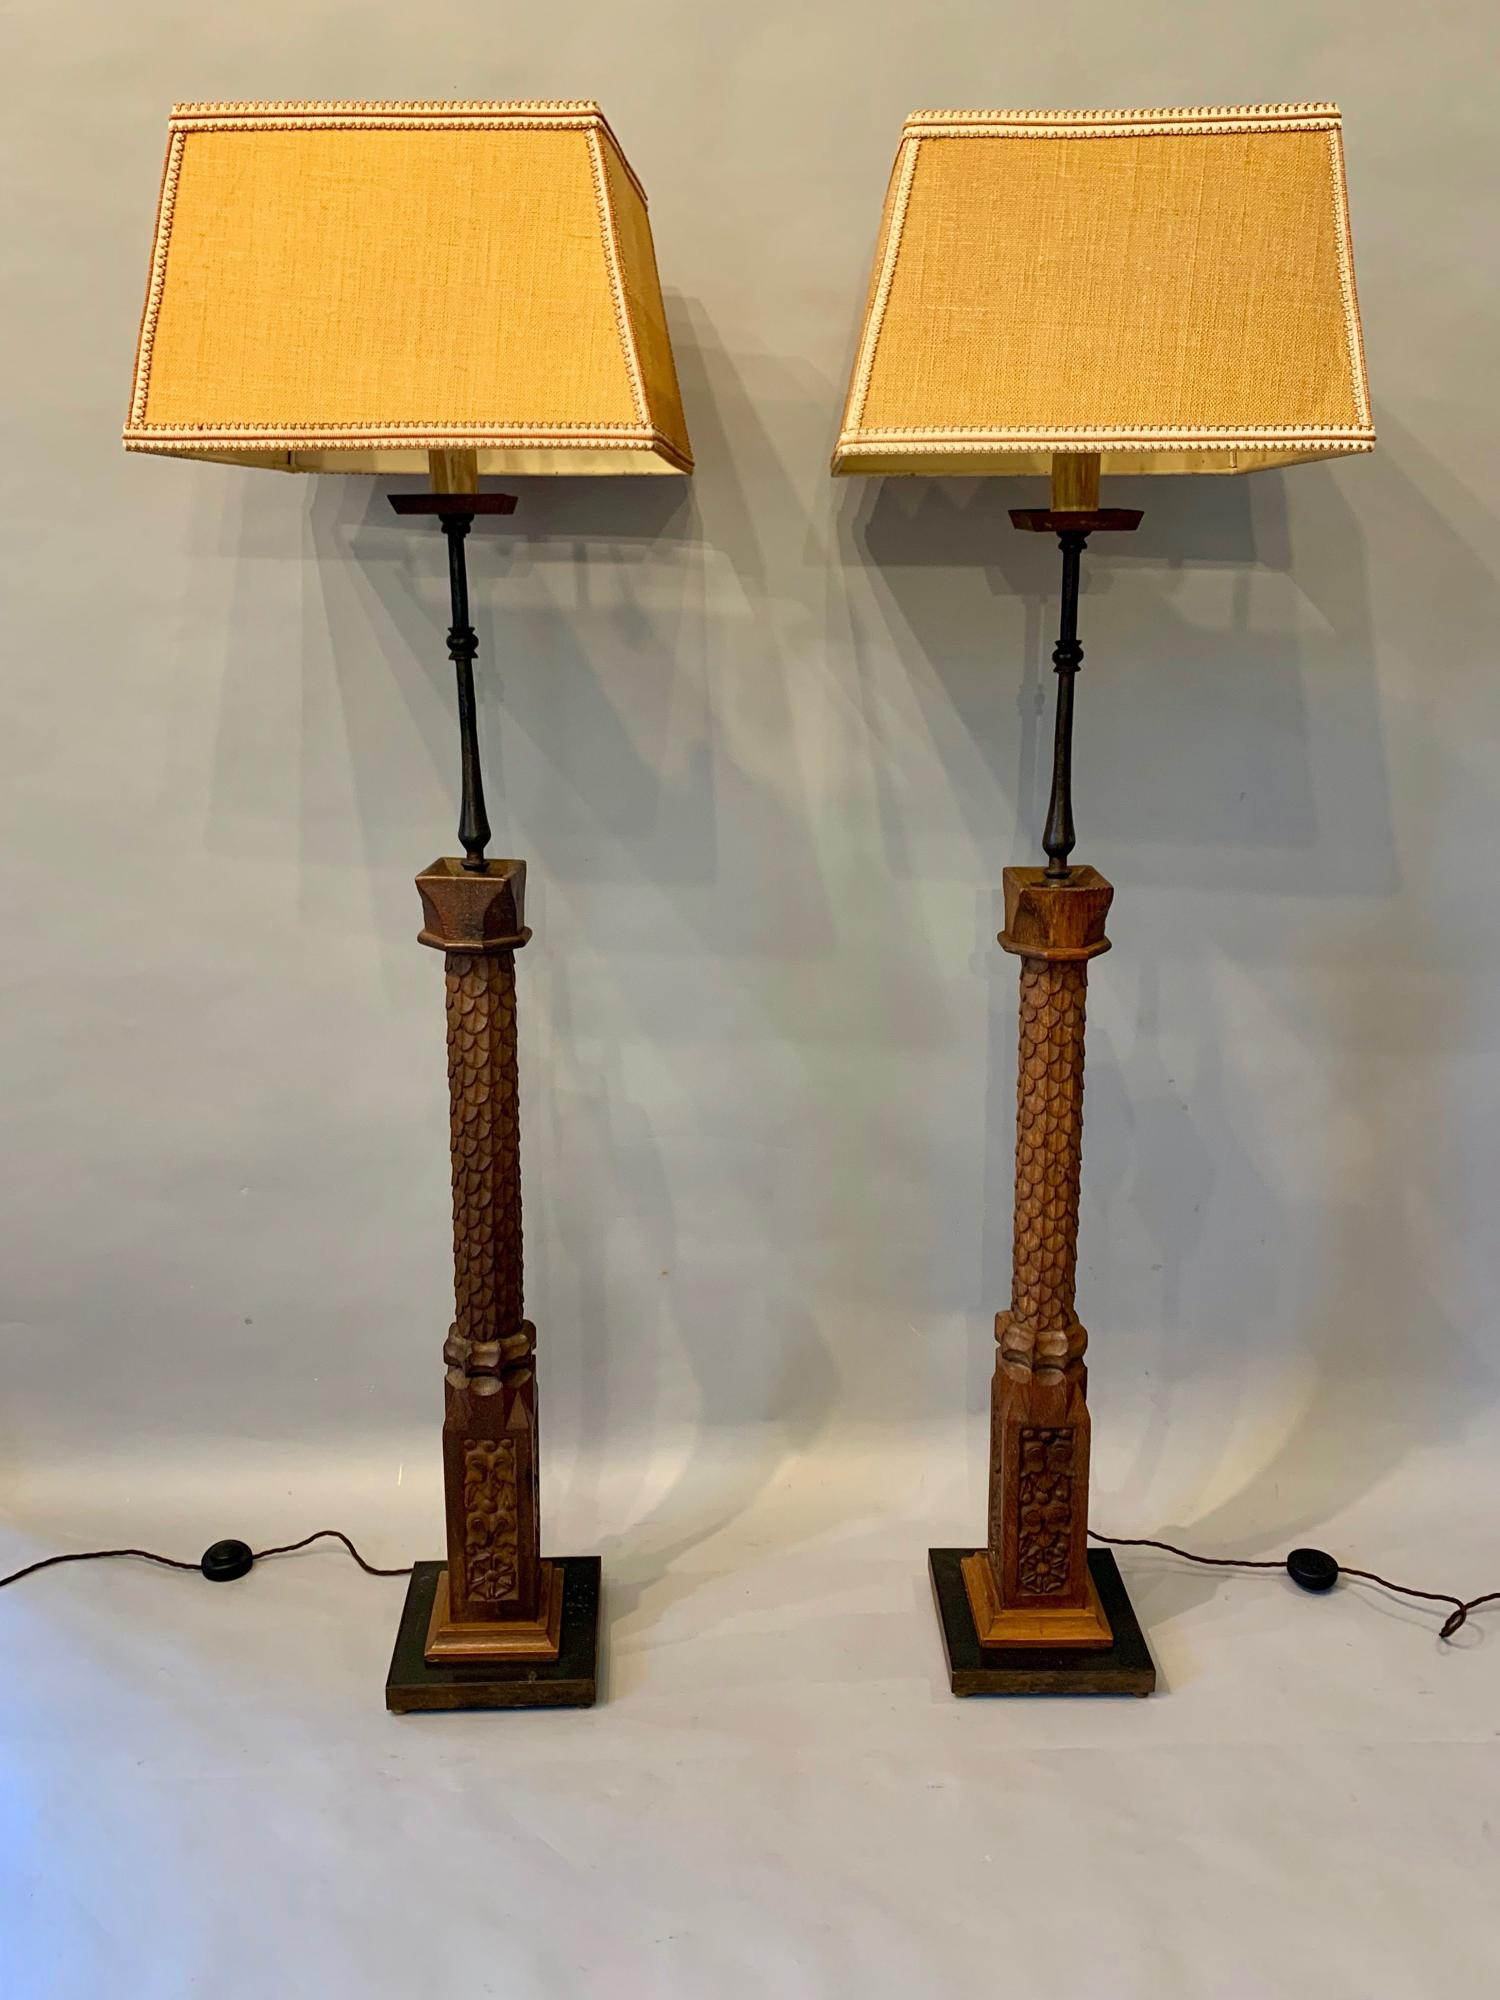 Pair of baluster floor lamps